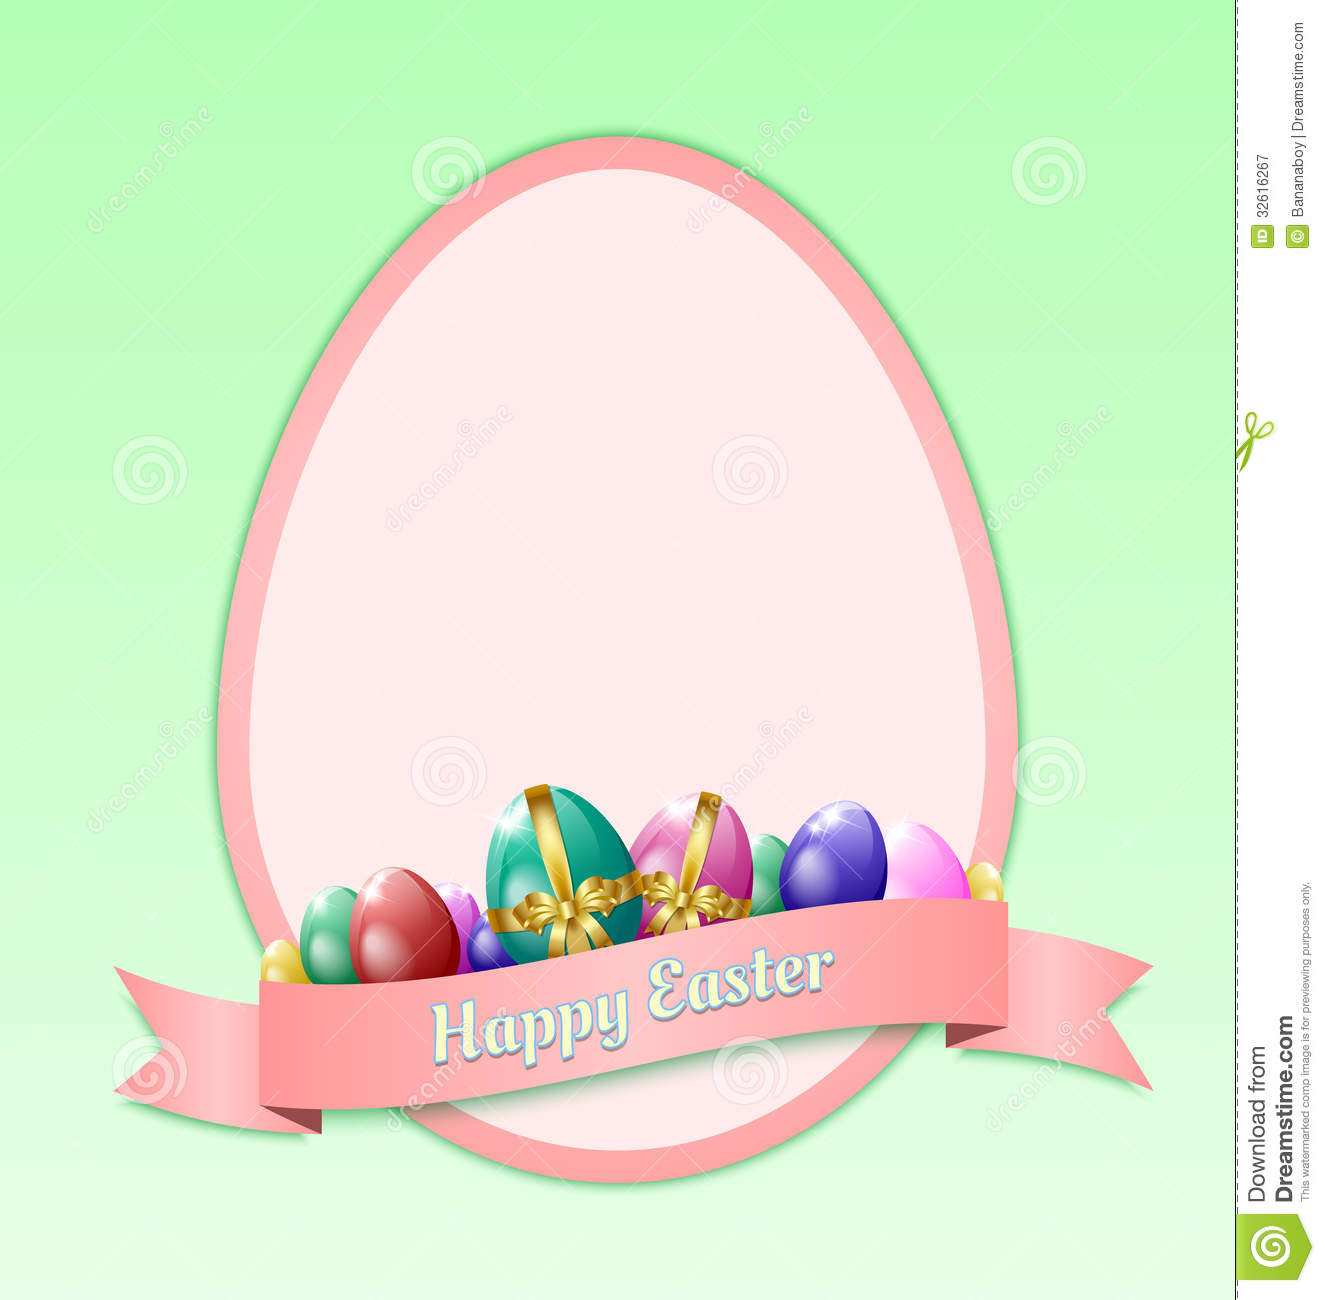 71 Free Happy Easter Card Templates Photo with Happy Easter Card Templates